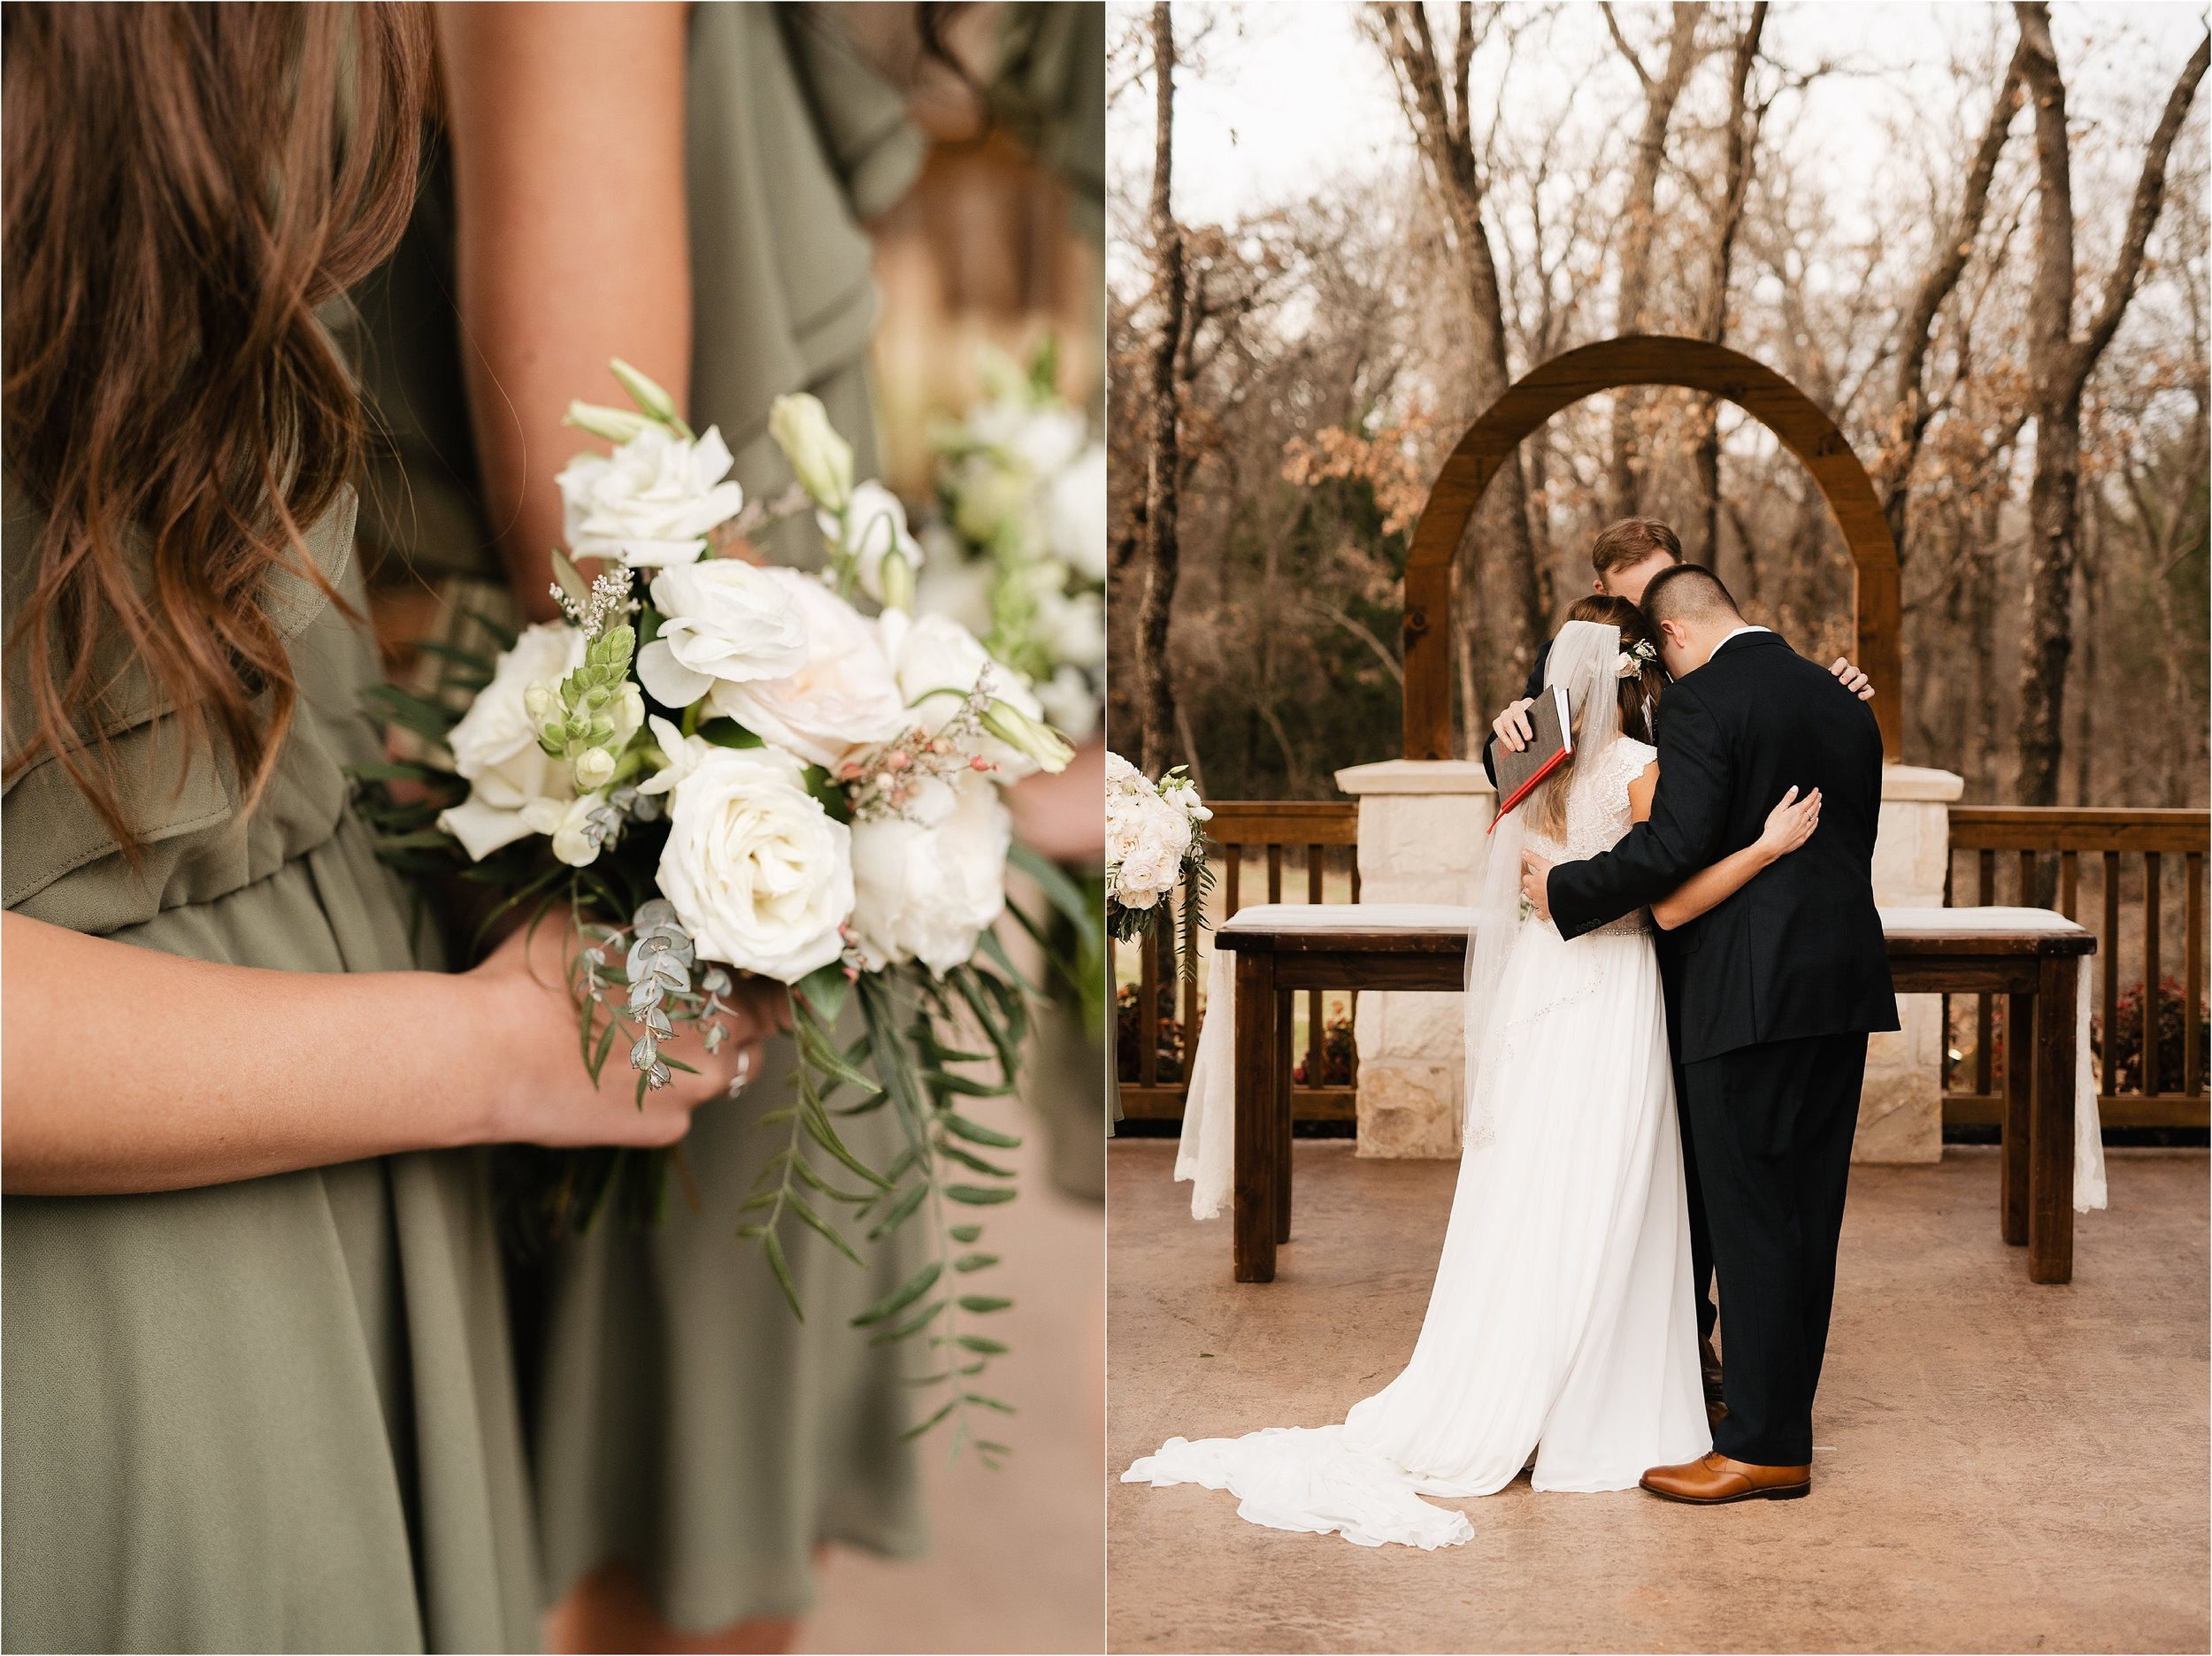 the springs norman oklahoma city wedding photographer outdoor ceremony reception wedding venue overcast family friends floral wedding bouquet arch